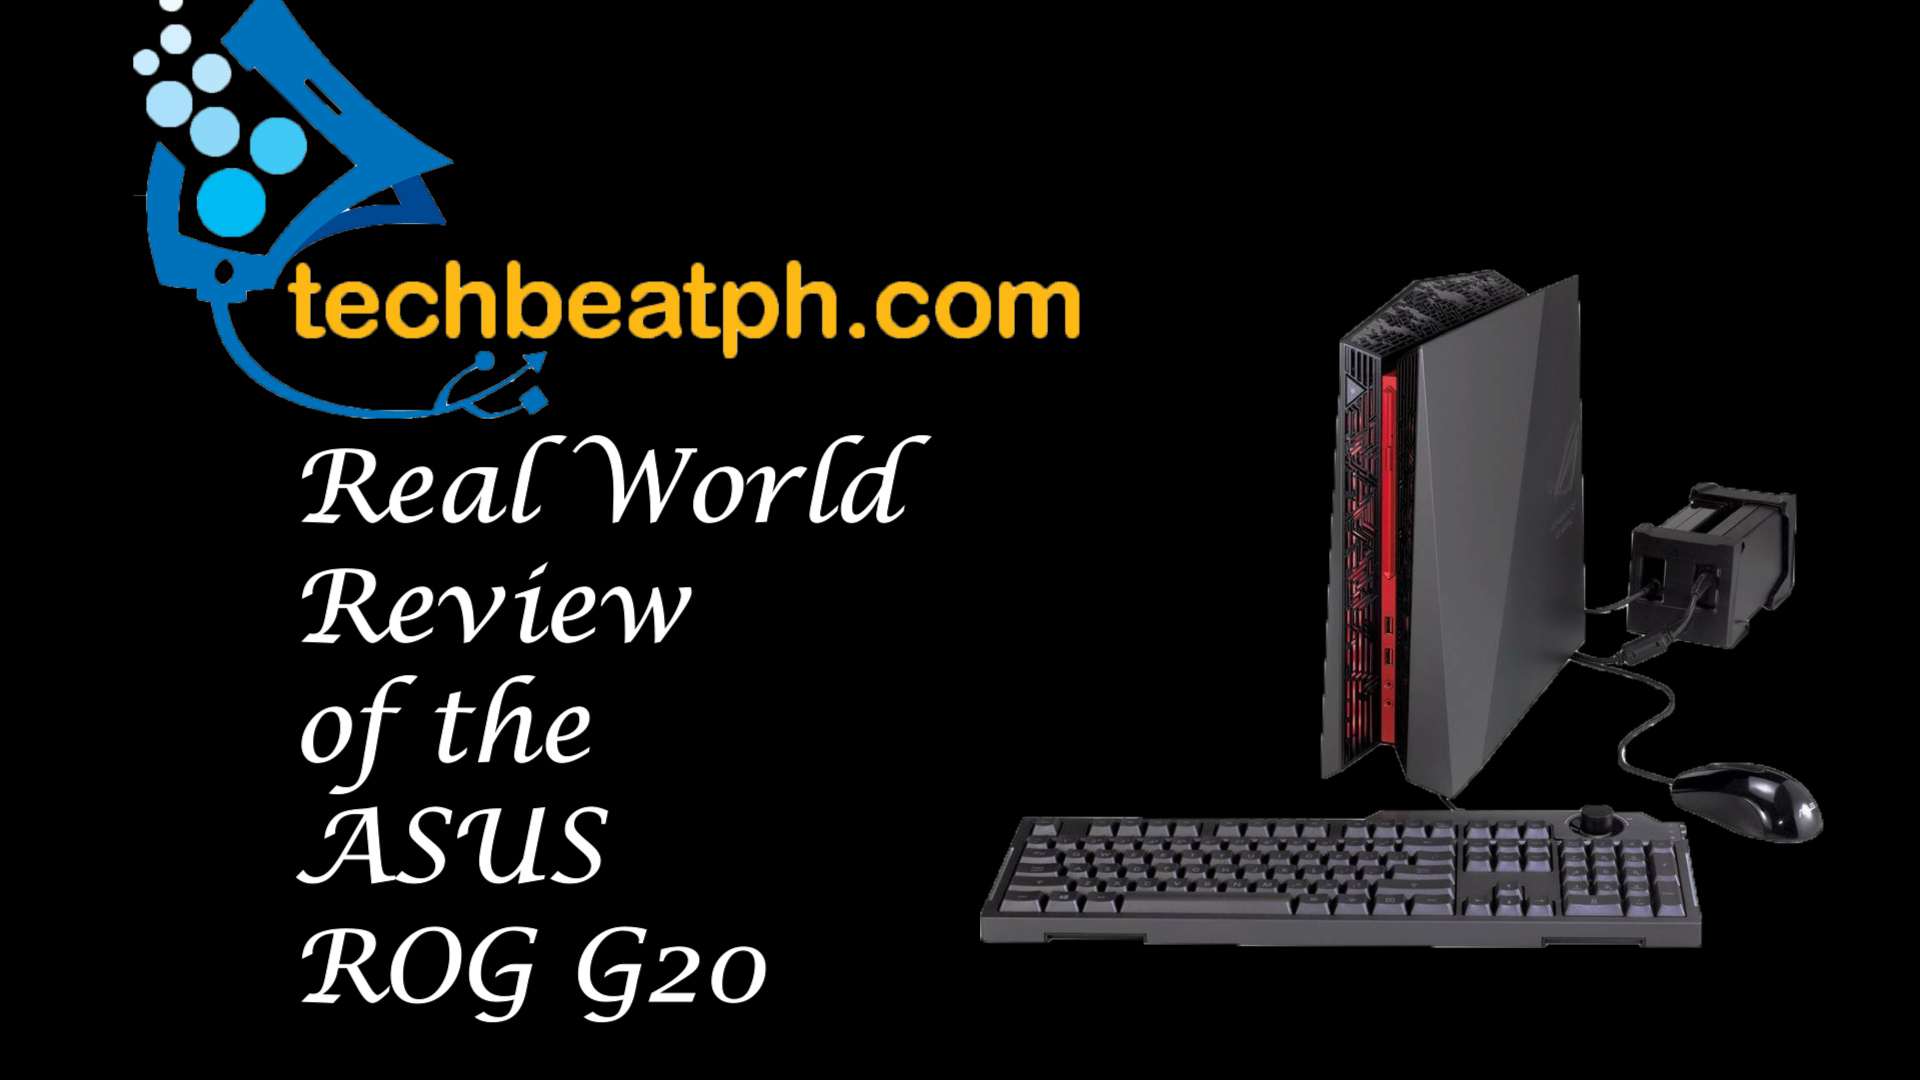 Techbeatph.com Reviews: ASUS ROG G20